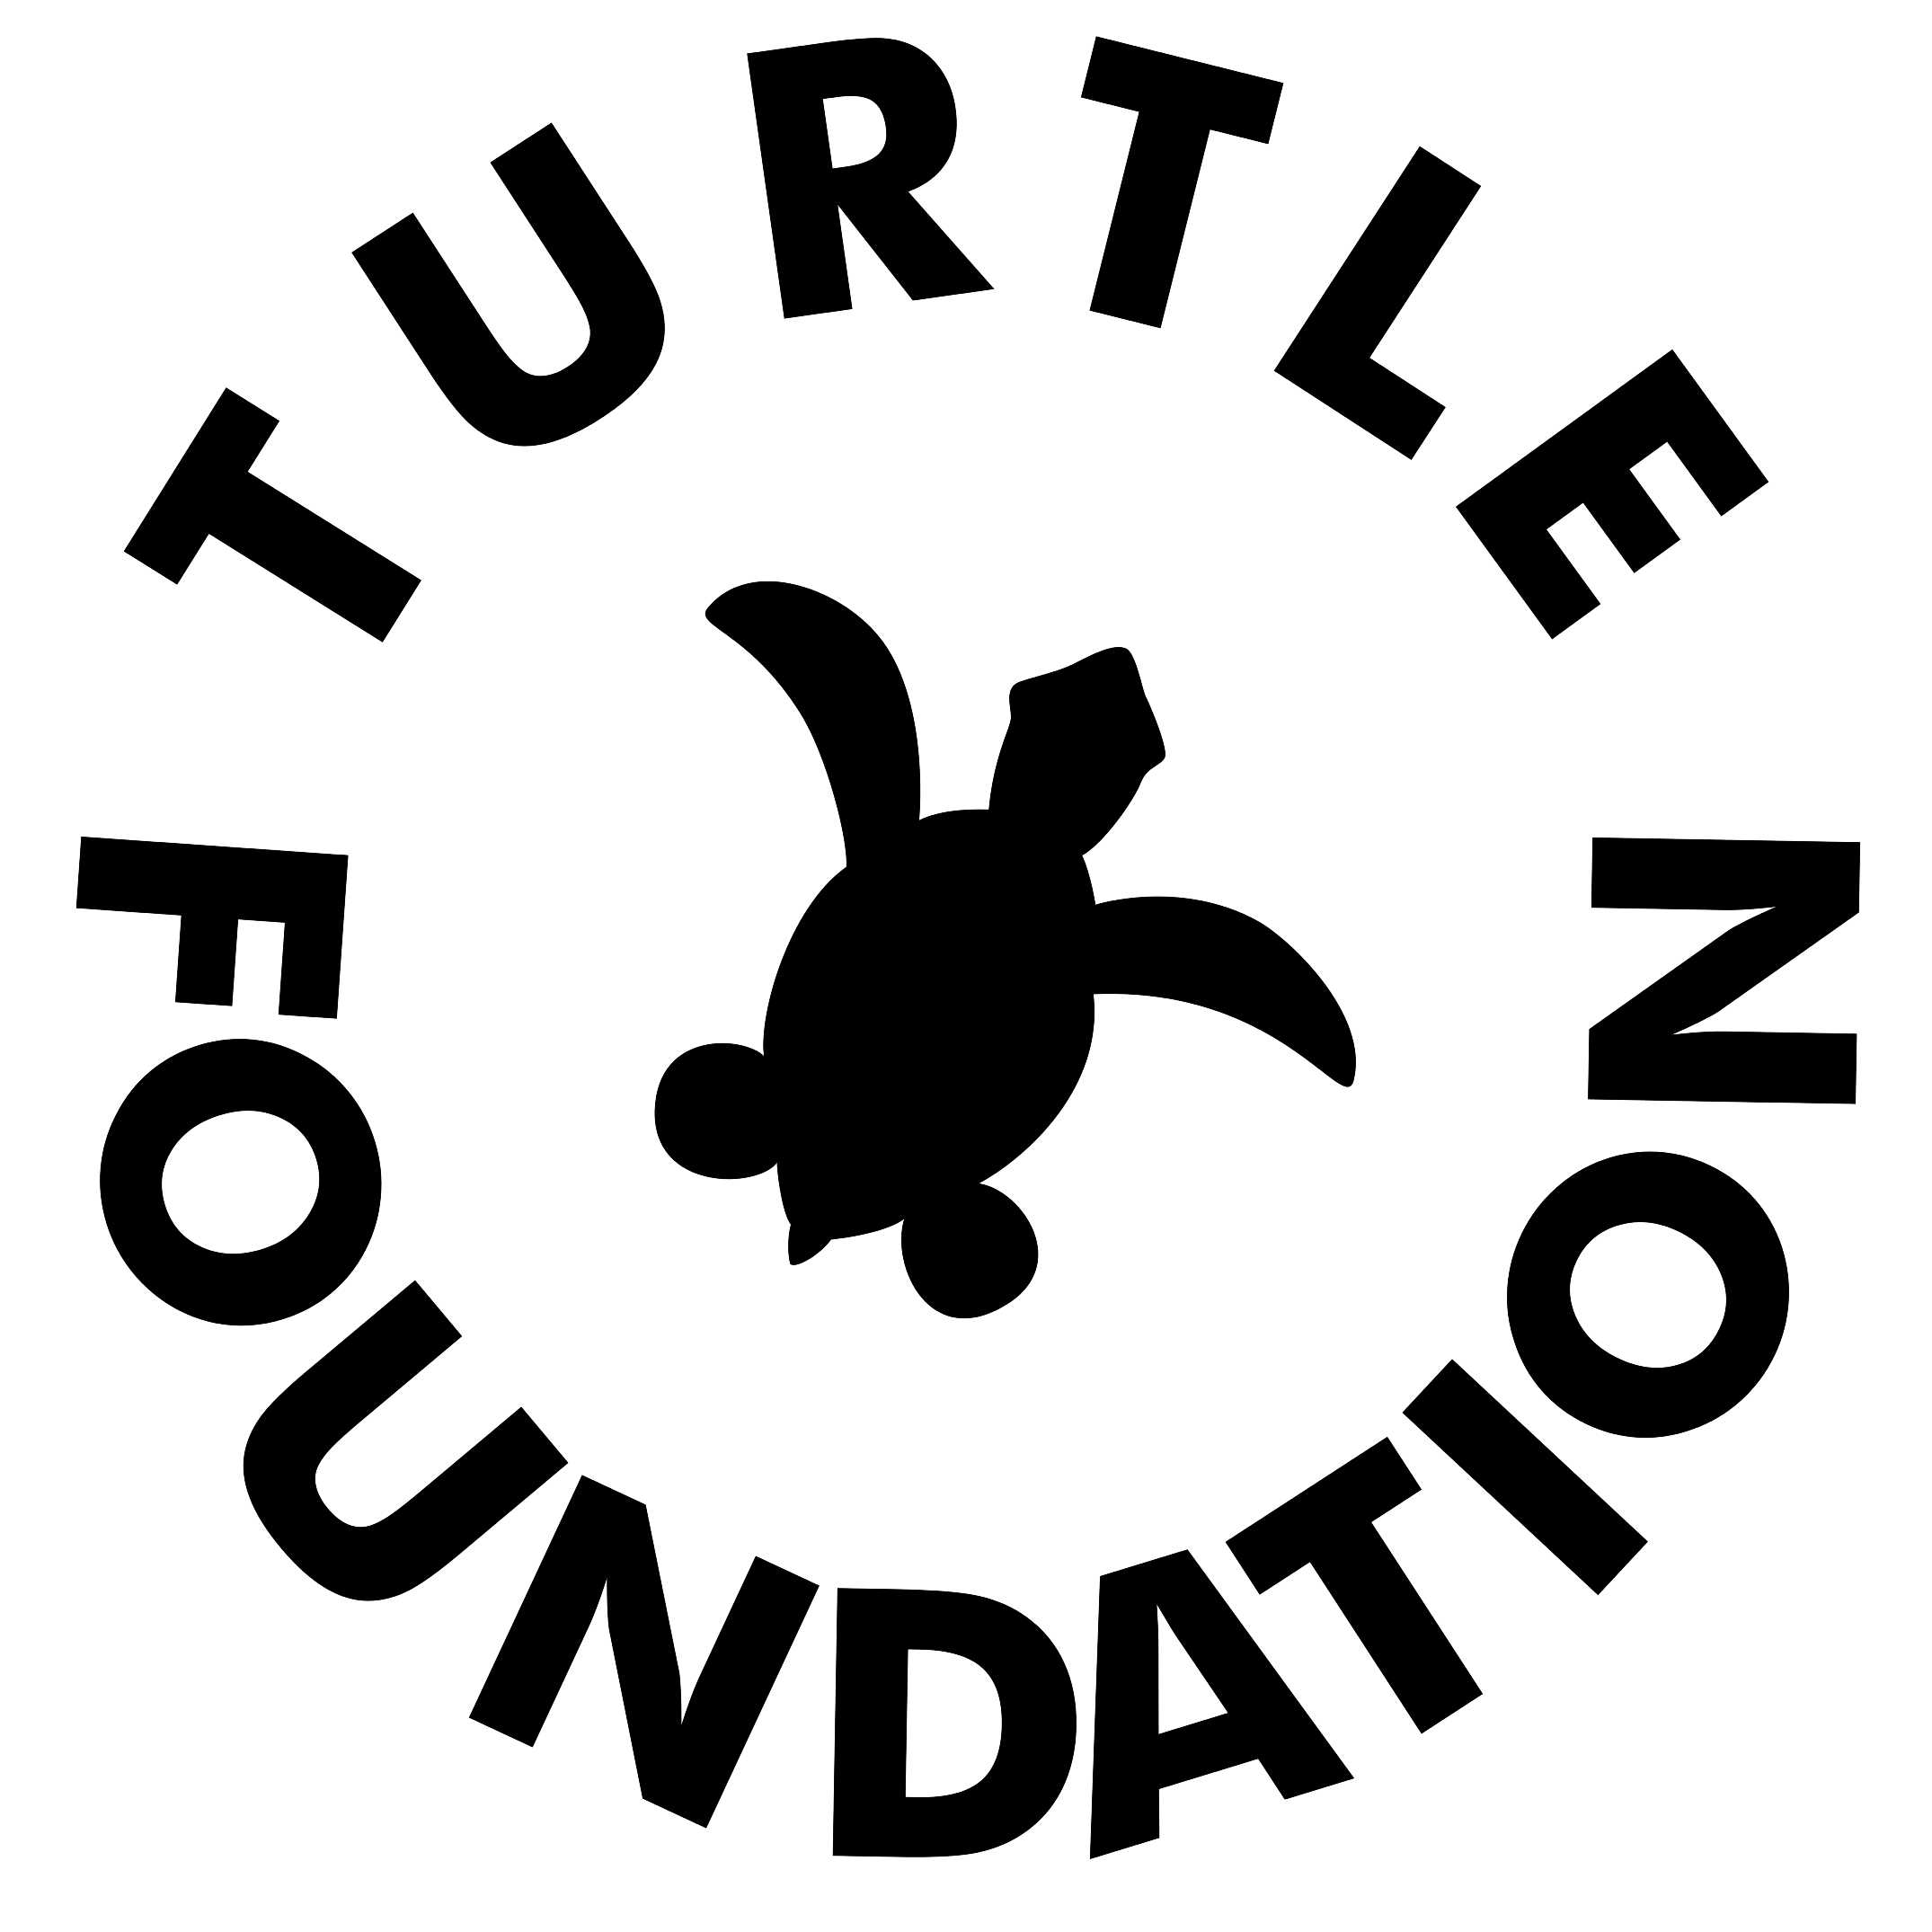 picture of www.turtle-foundation.org logo